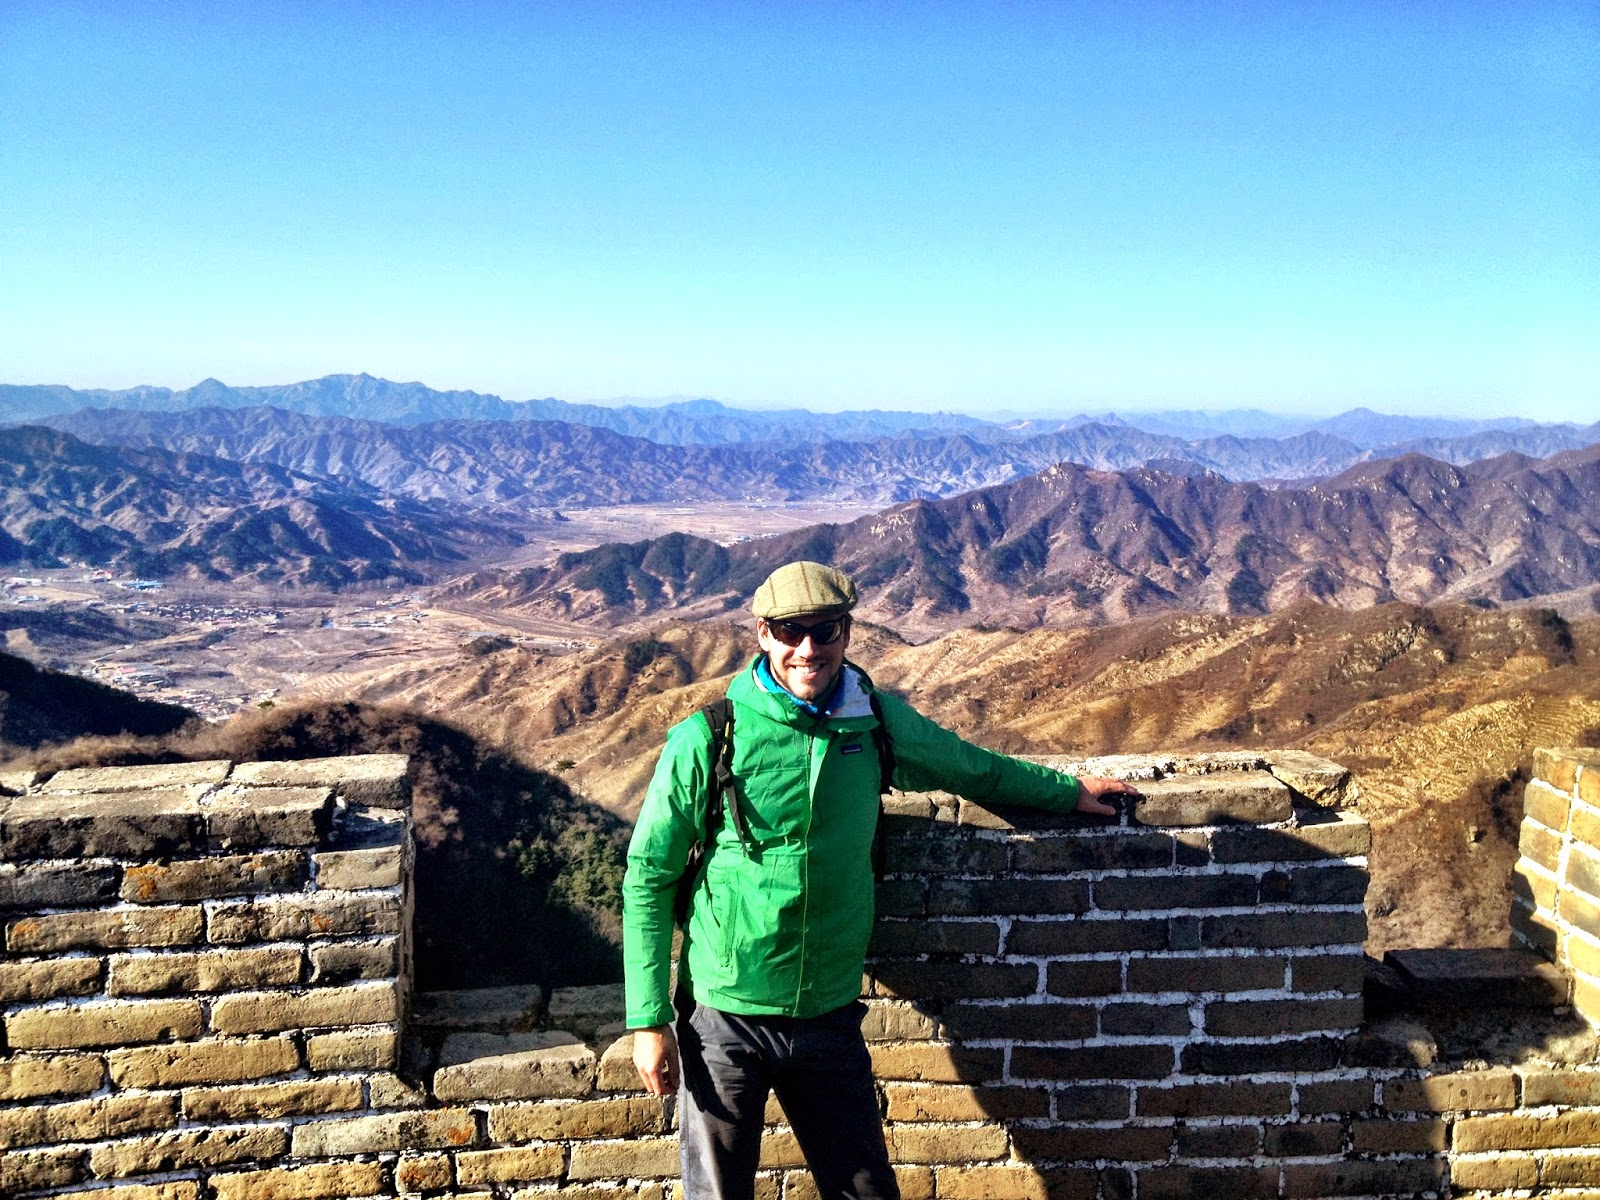 Me on The Great Wall Of China - March 2013